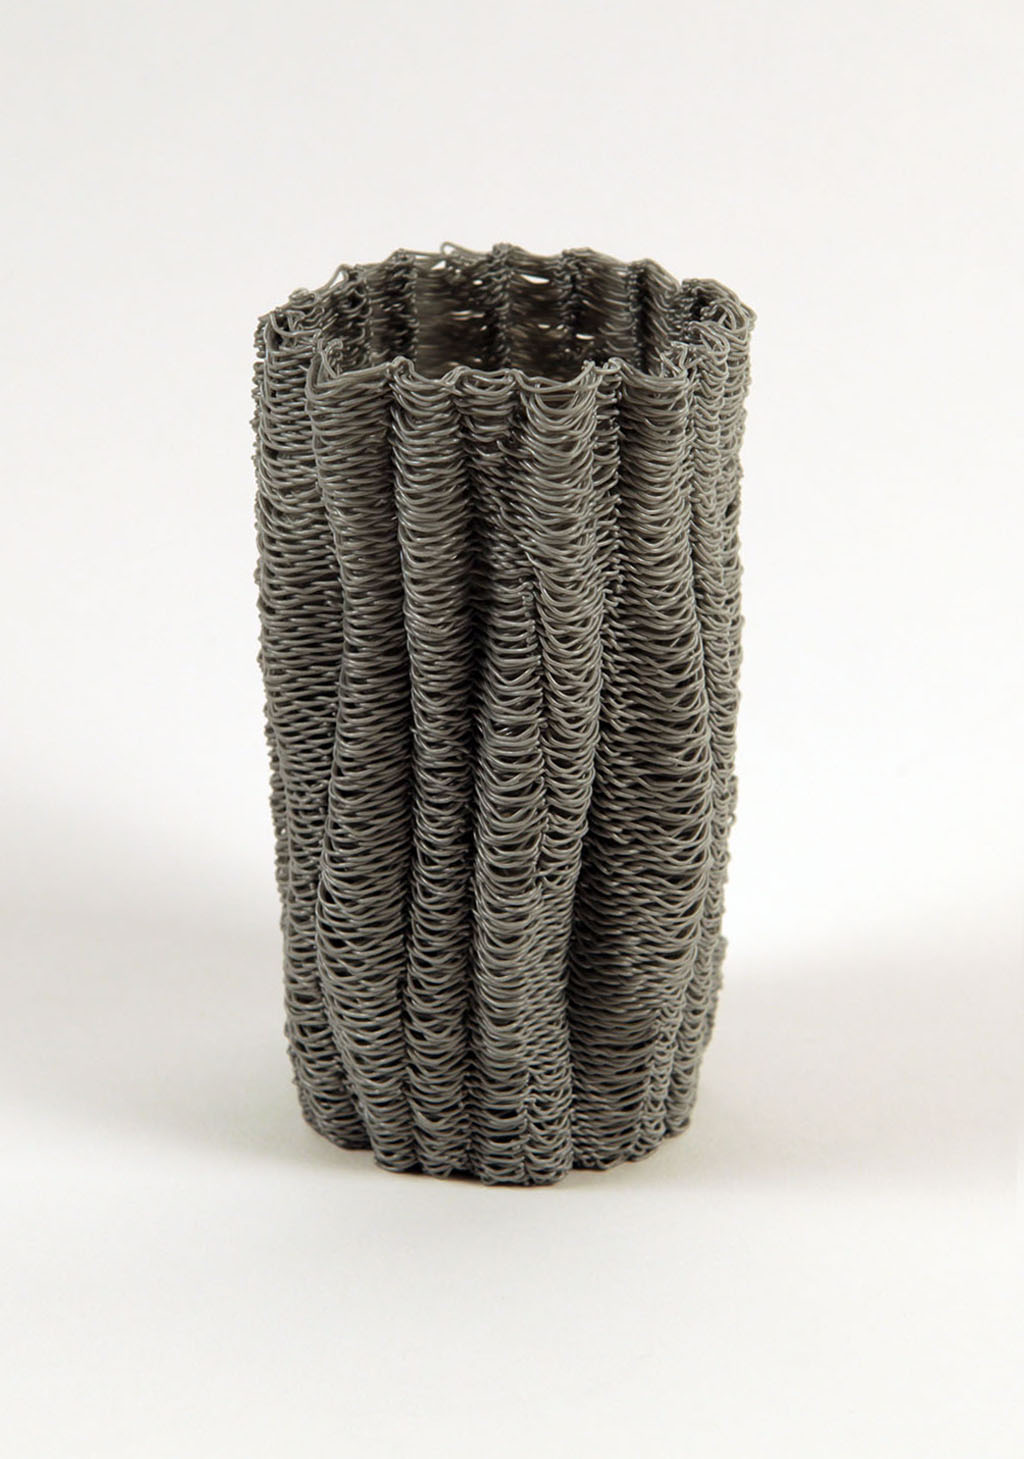 Vessel: 3D Printing That Looks Like Woven Baskets